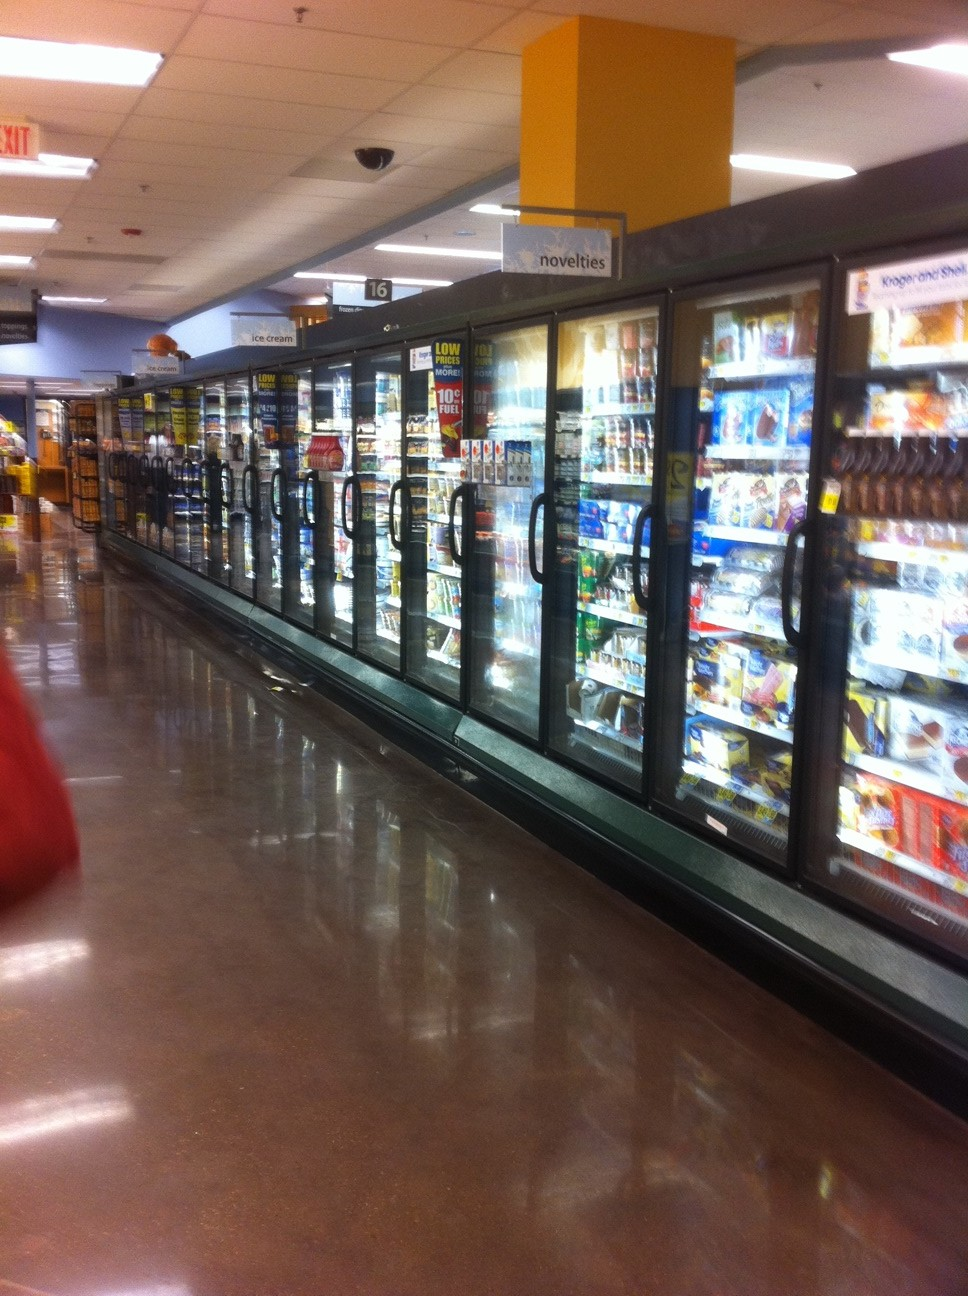 Rumors of the Cedar Springs Kroger demise are greatly exaggerated